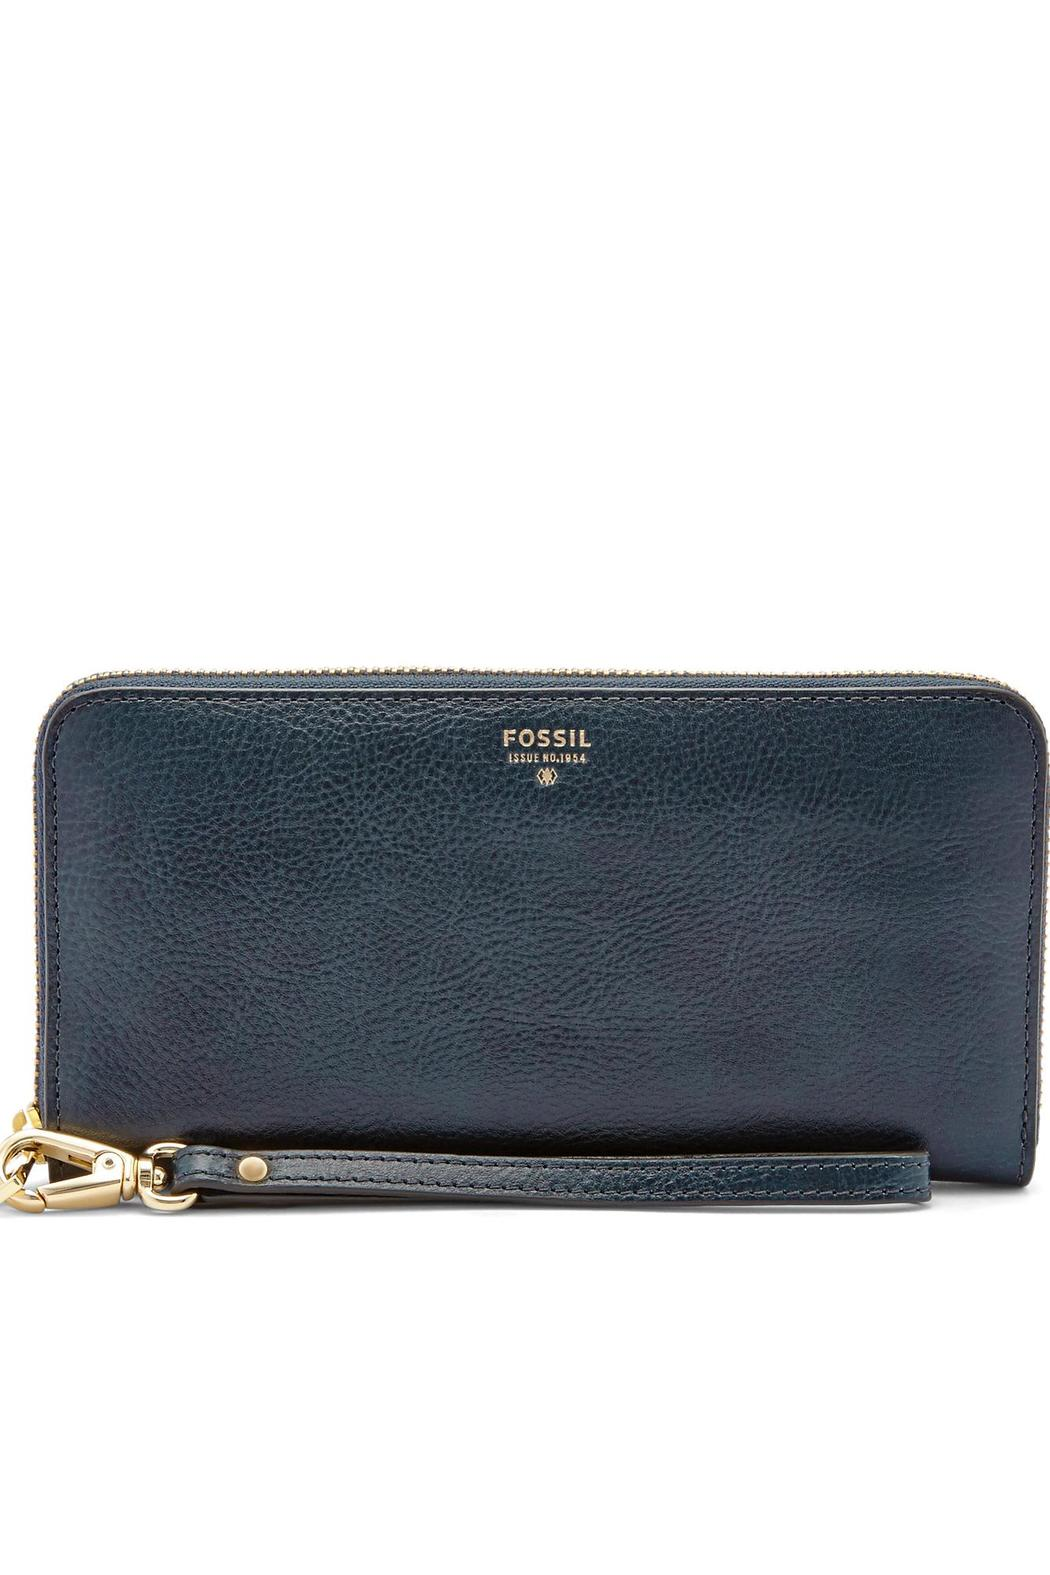 Fossil Sydney Zip Clutch - Main Image